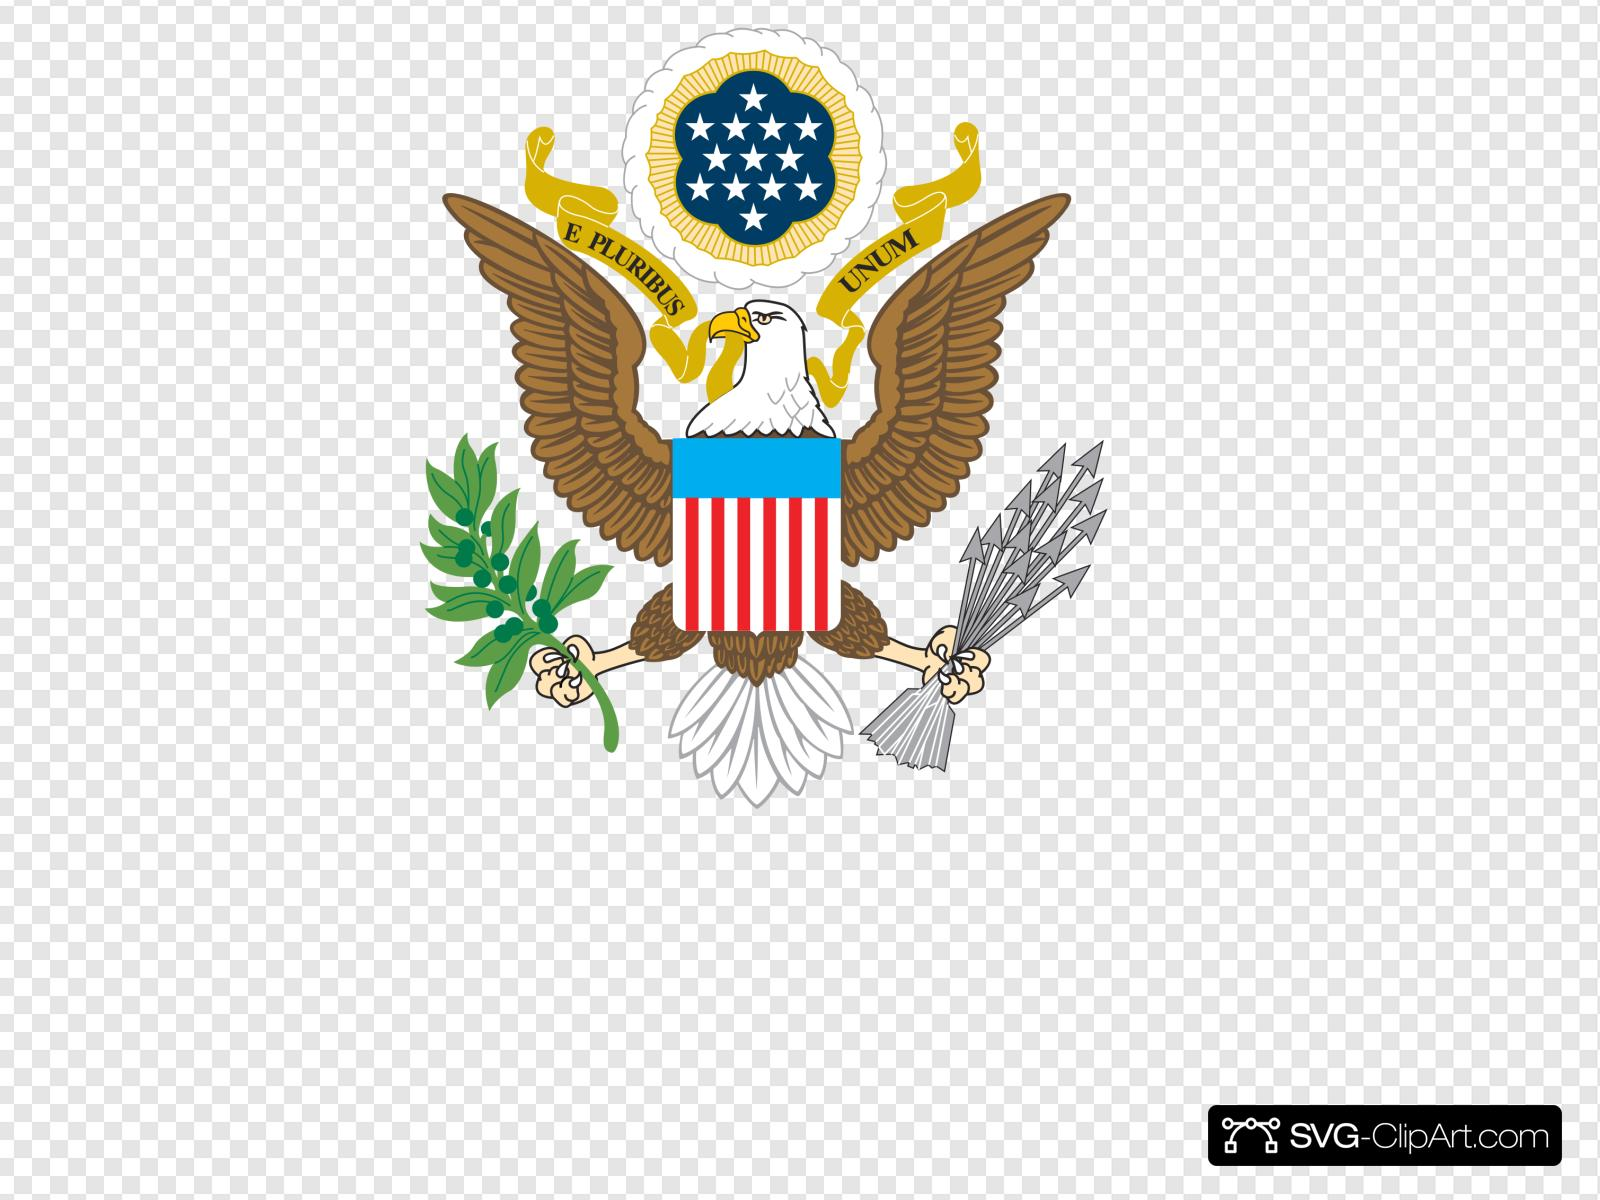 American crest clipart vector freeuse download American Eagle Clip art, Icon and SVG - SVG Clipart vector freeuse download